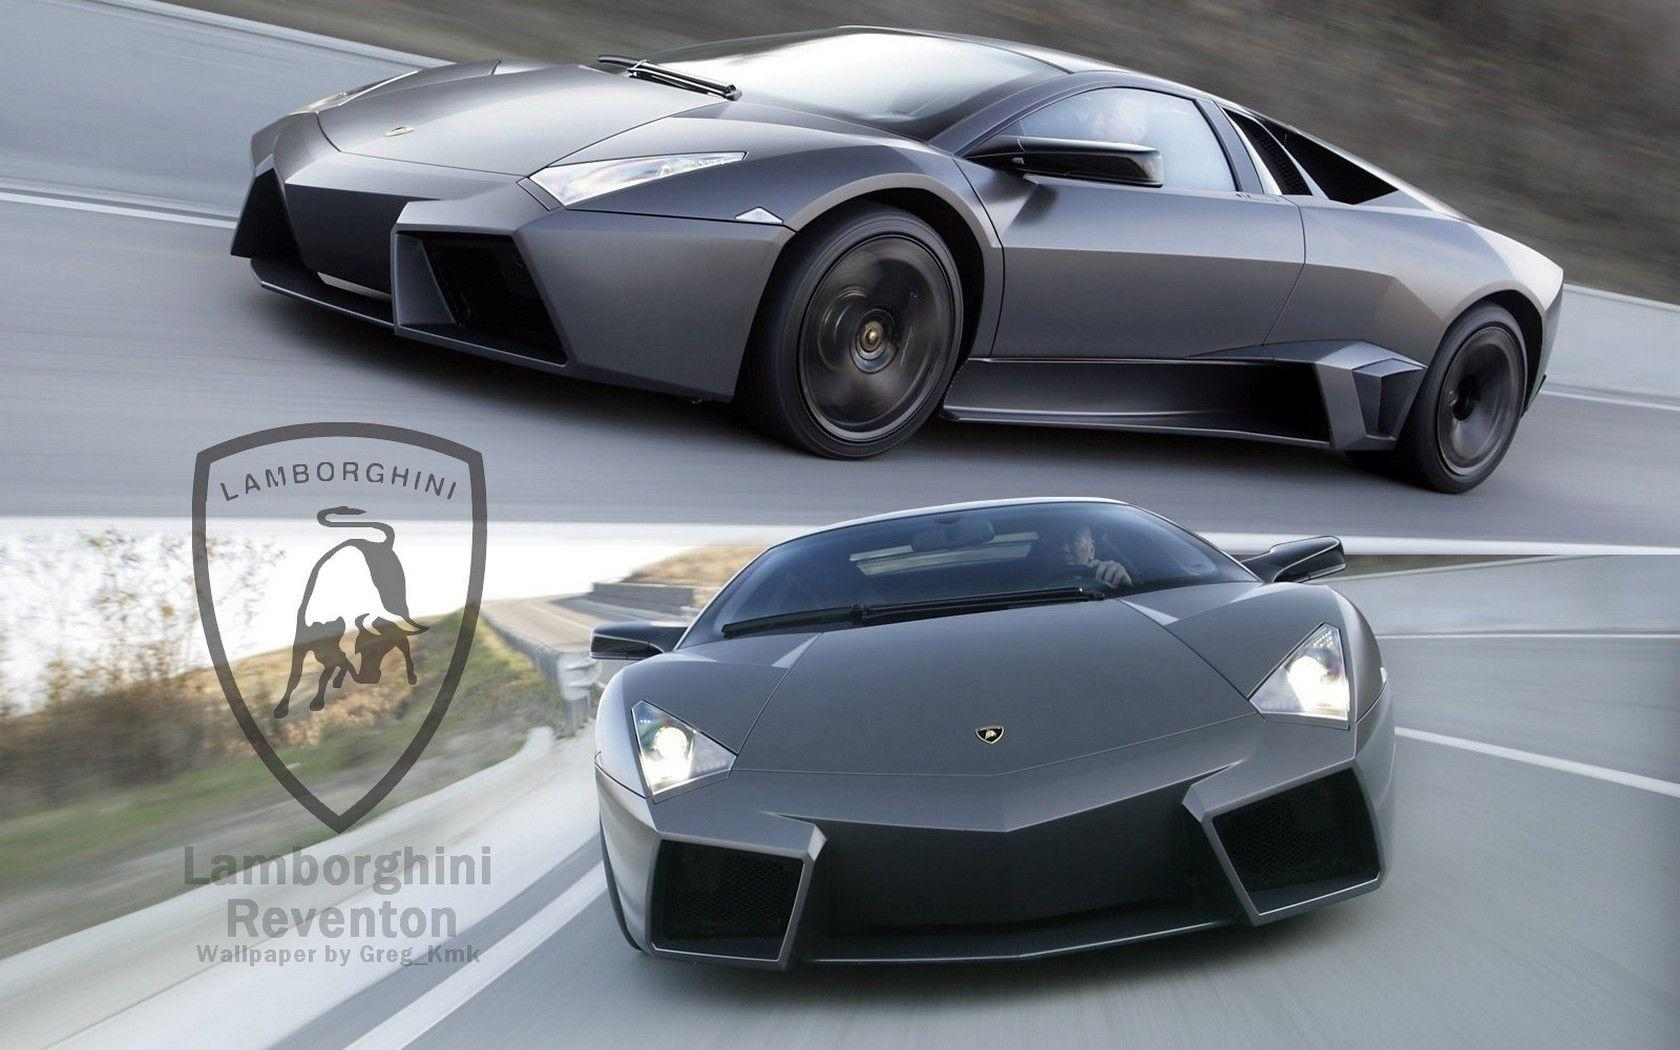 lamborghini reventon image wallpaper - photo #13